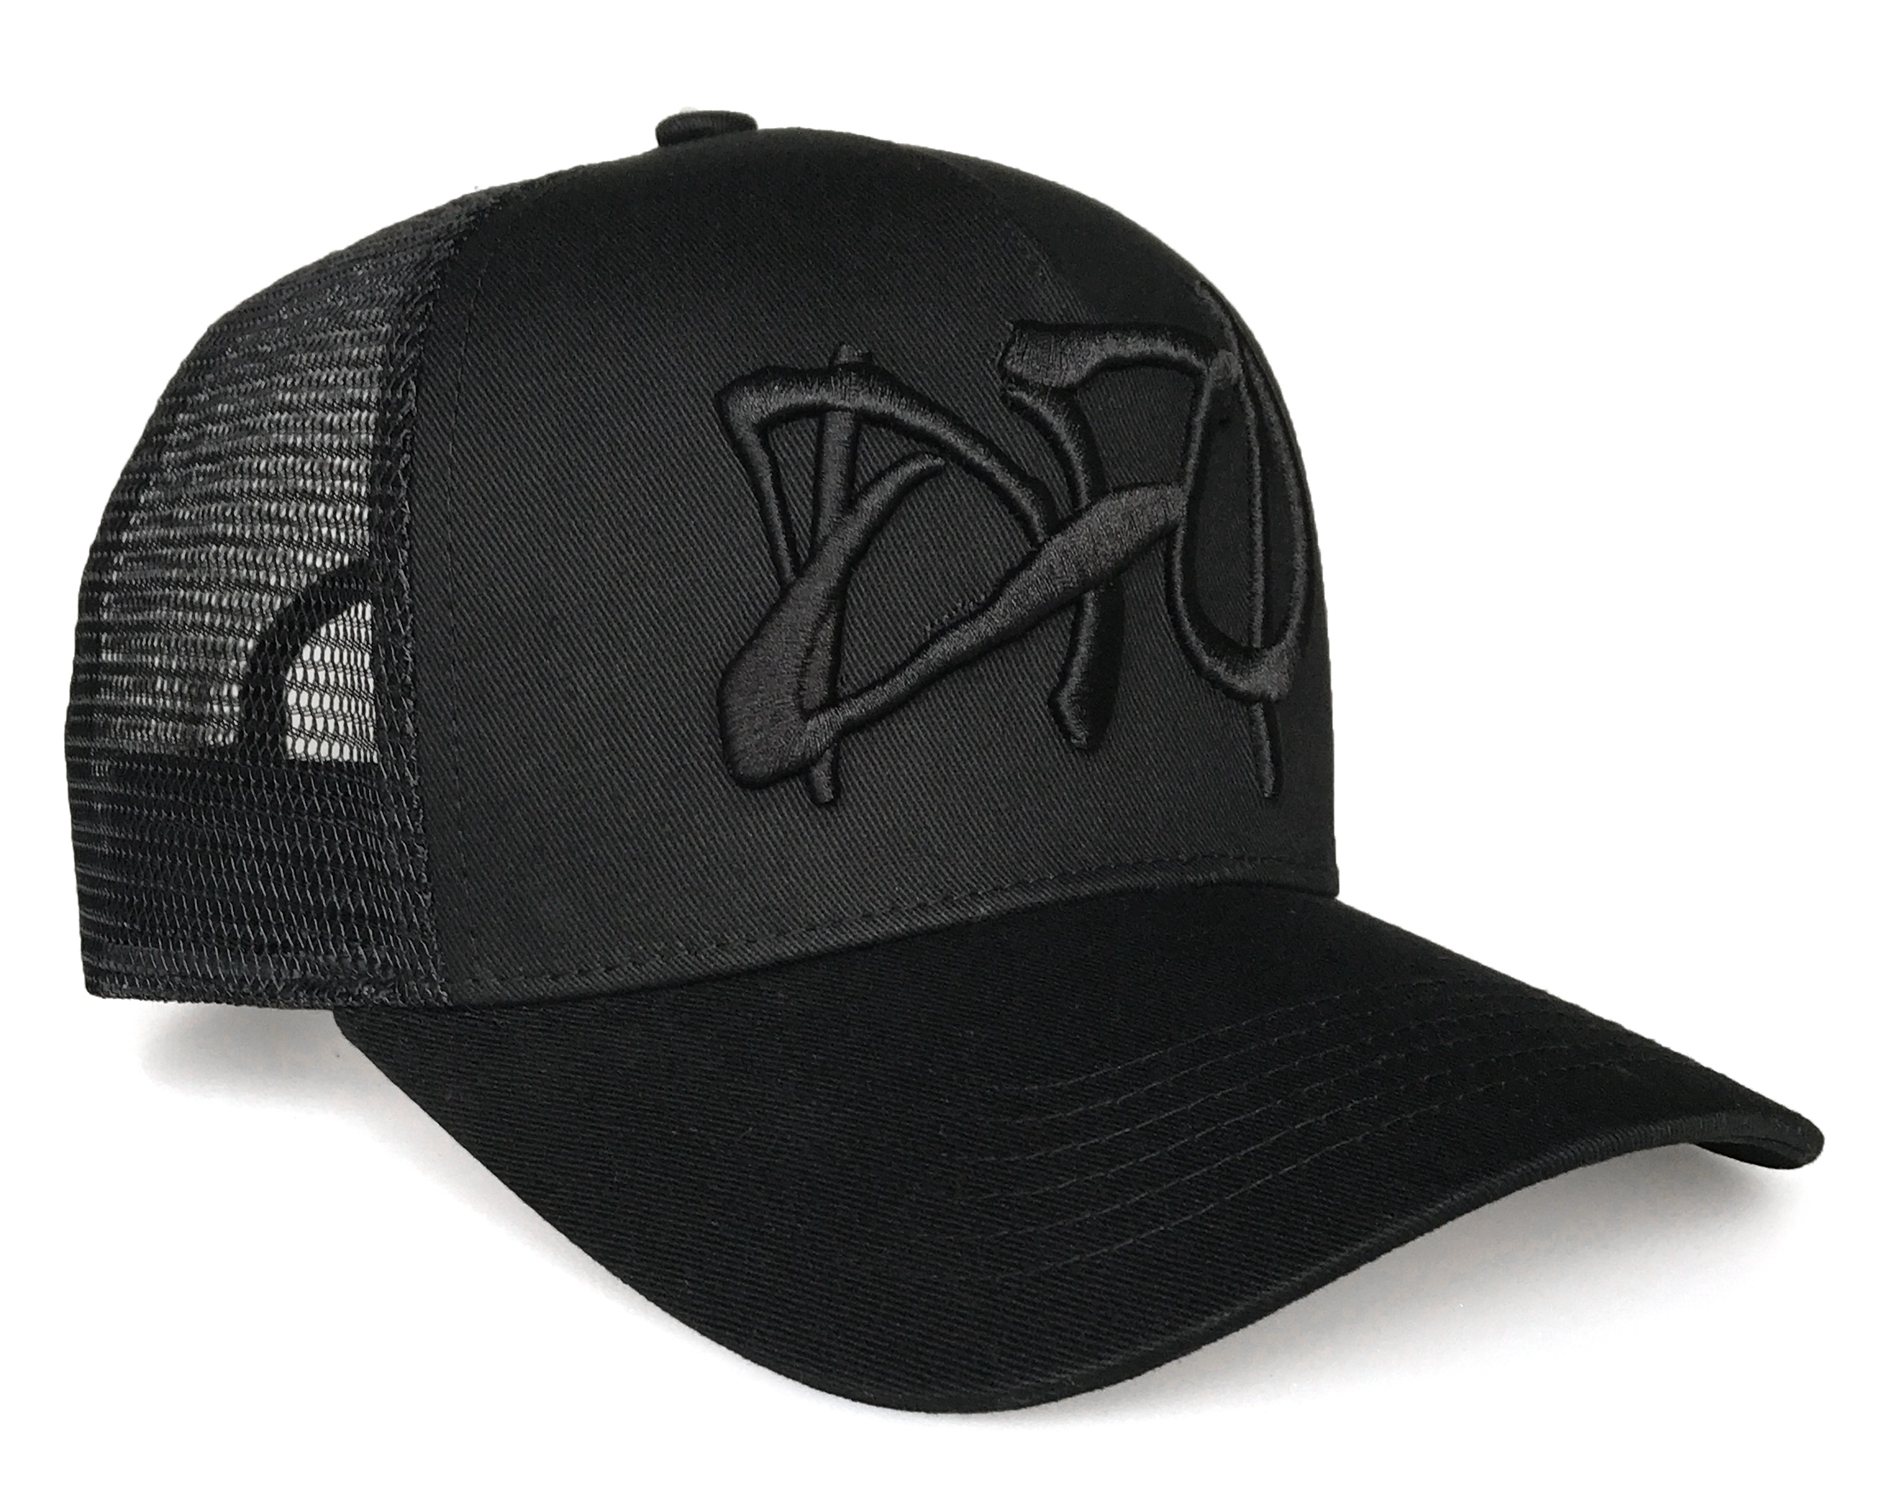 Fashion 5 panel style black logo 3D embroidery trucker hat